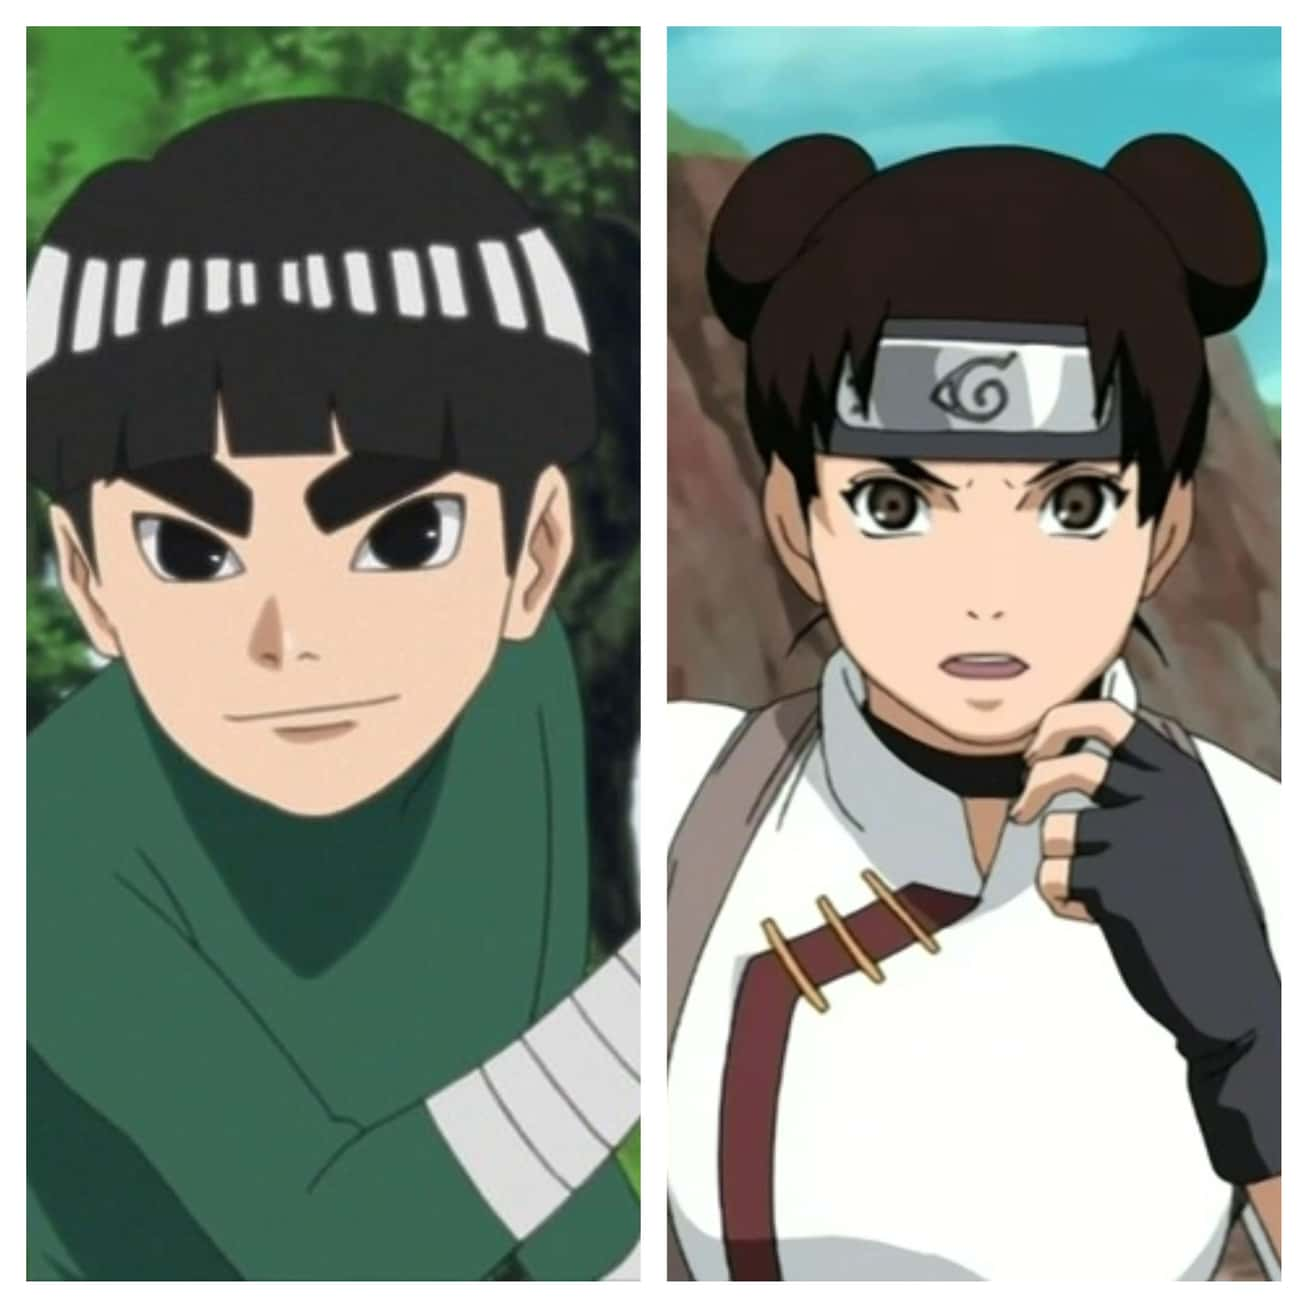 Tenten Is Metal Lee's Moth is listed (or ranked) 3 on the list The 12 Craziest 'Naruto' Fan Theories